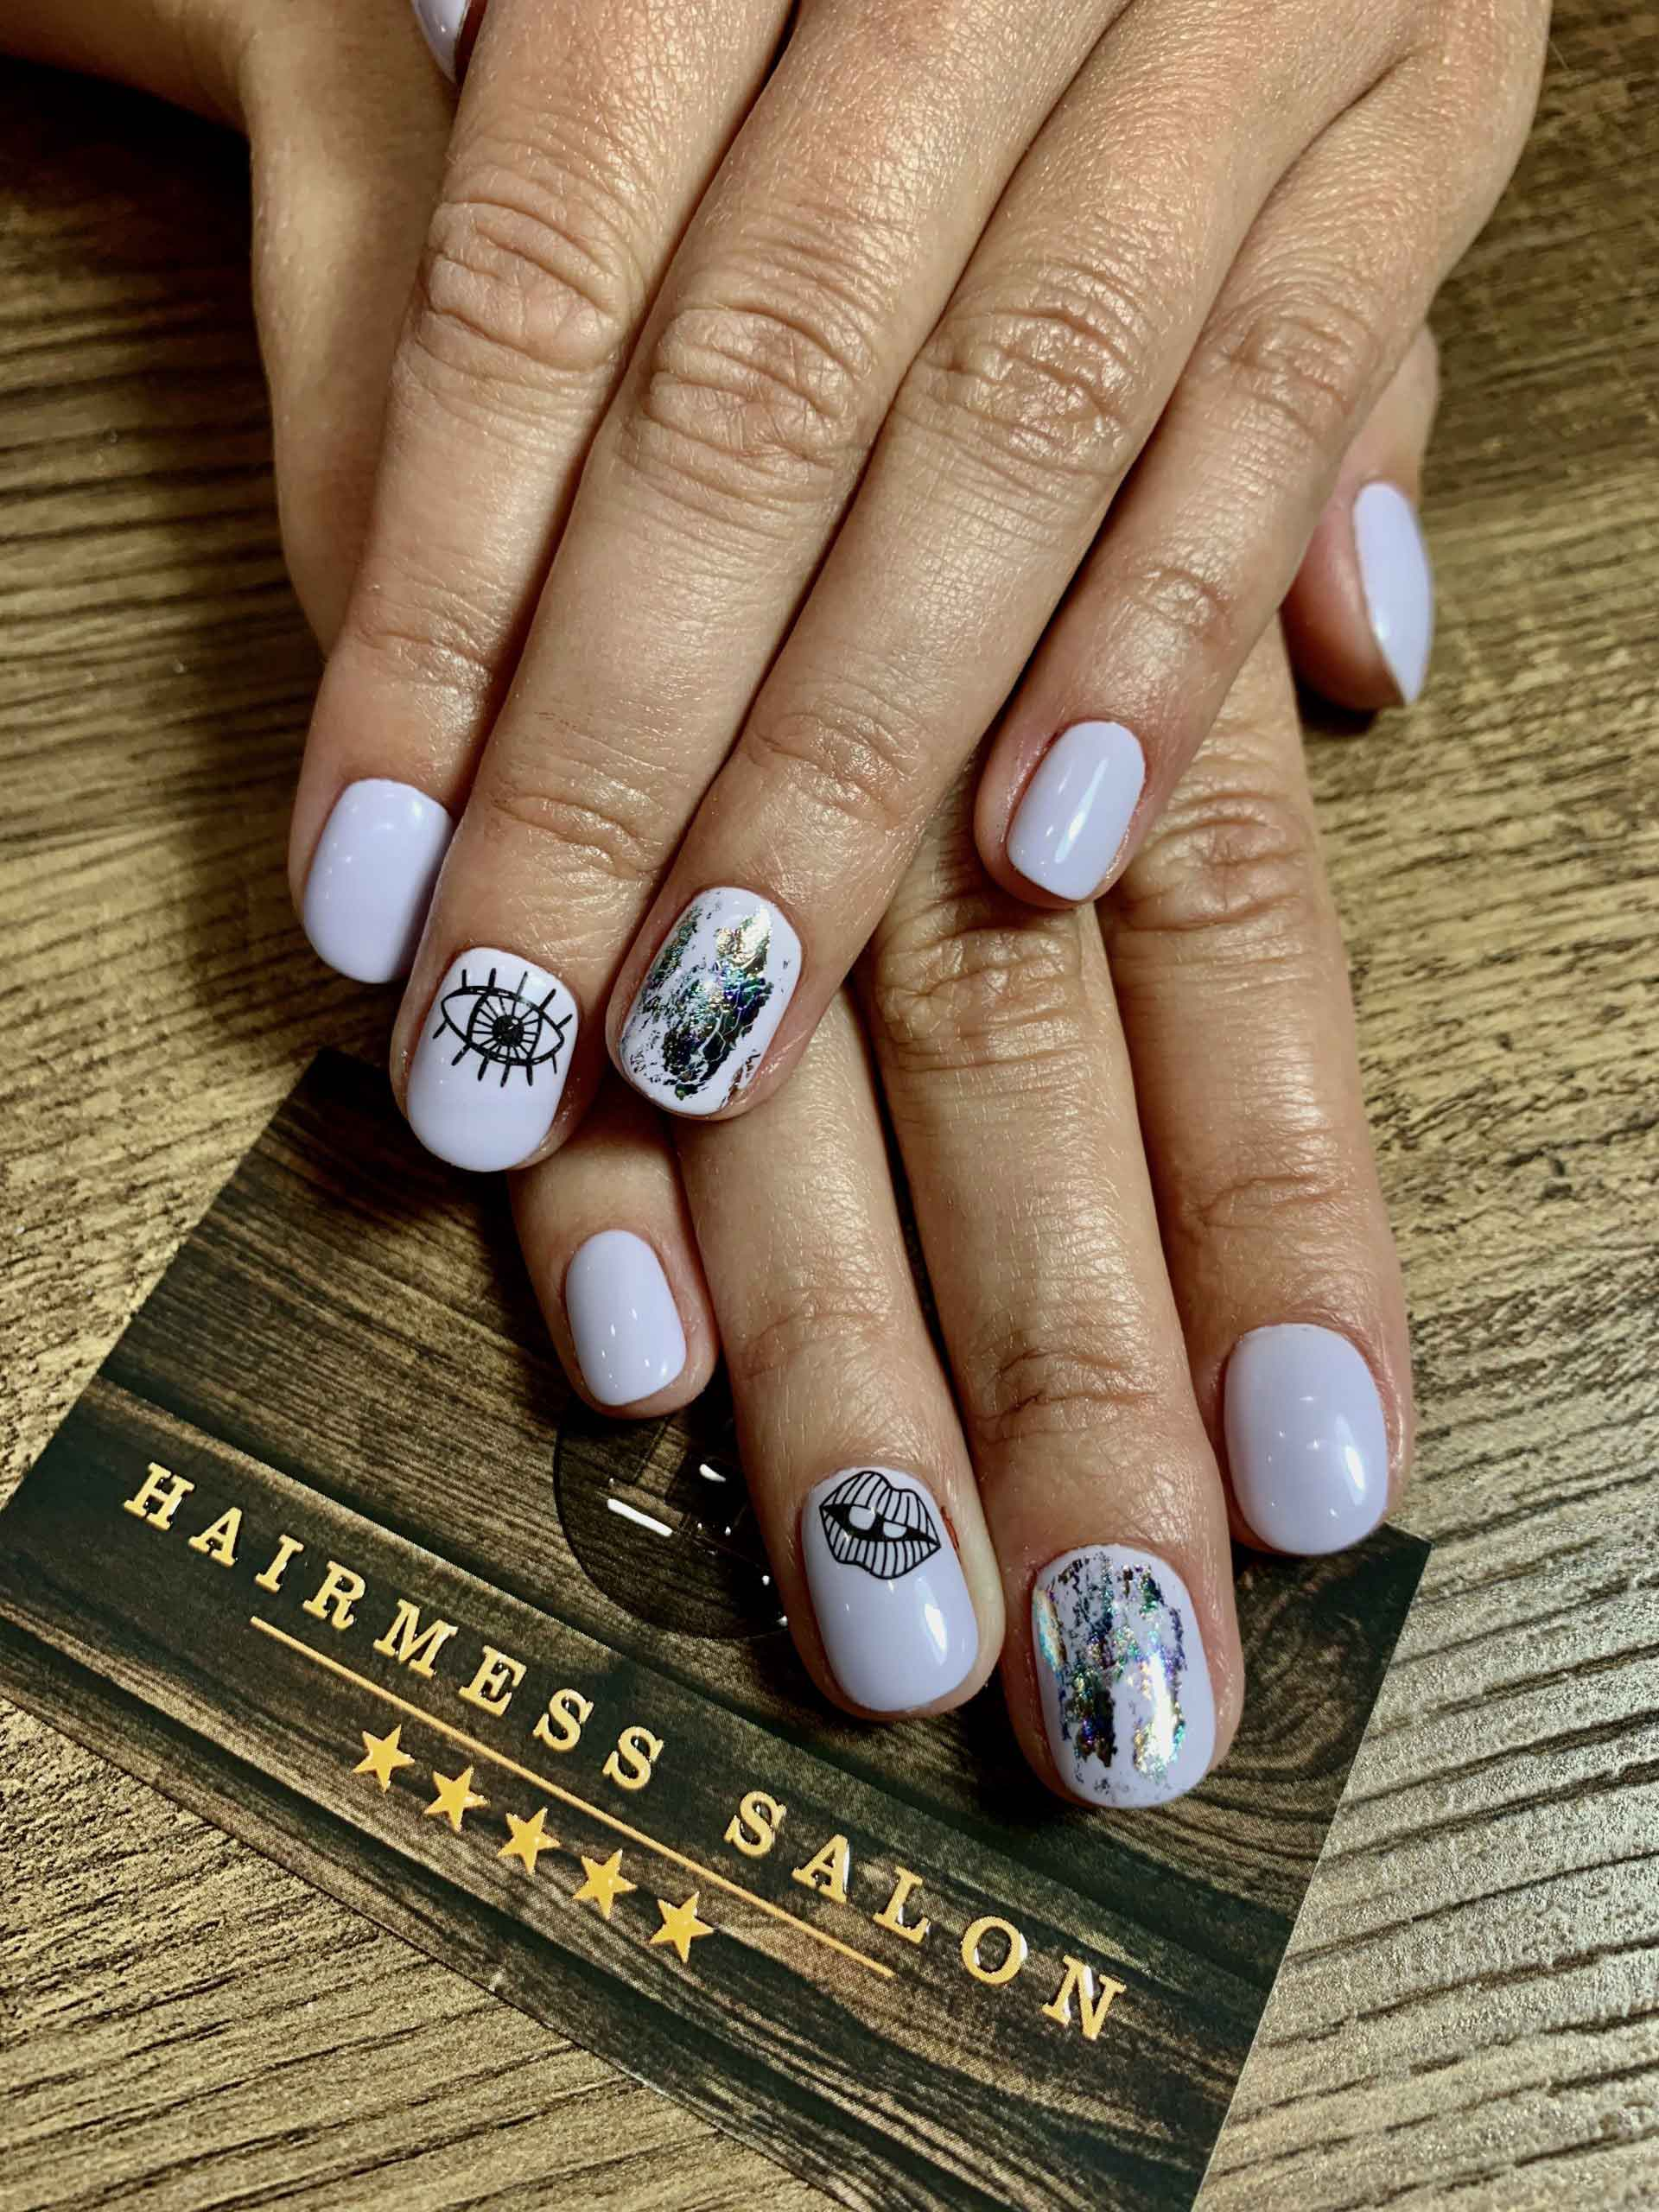 hairmess salon boca raton fl manicure